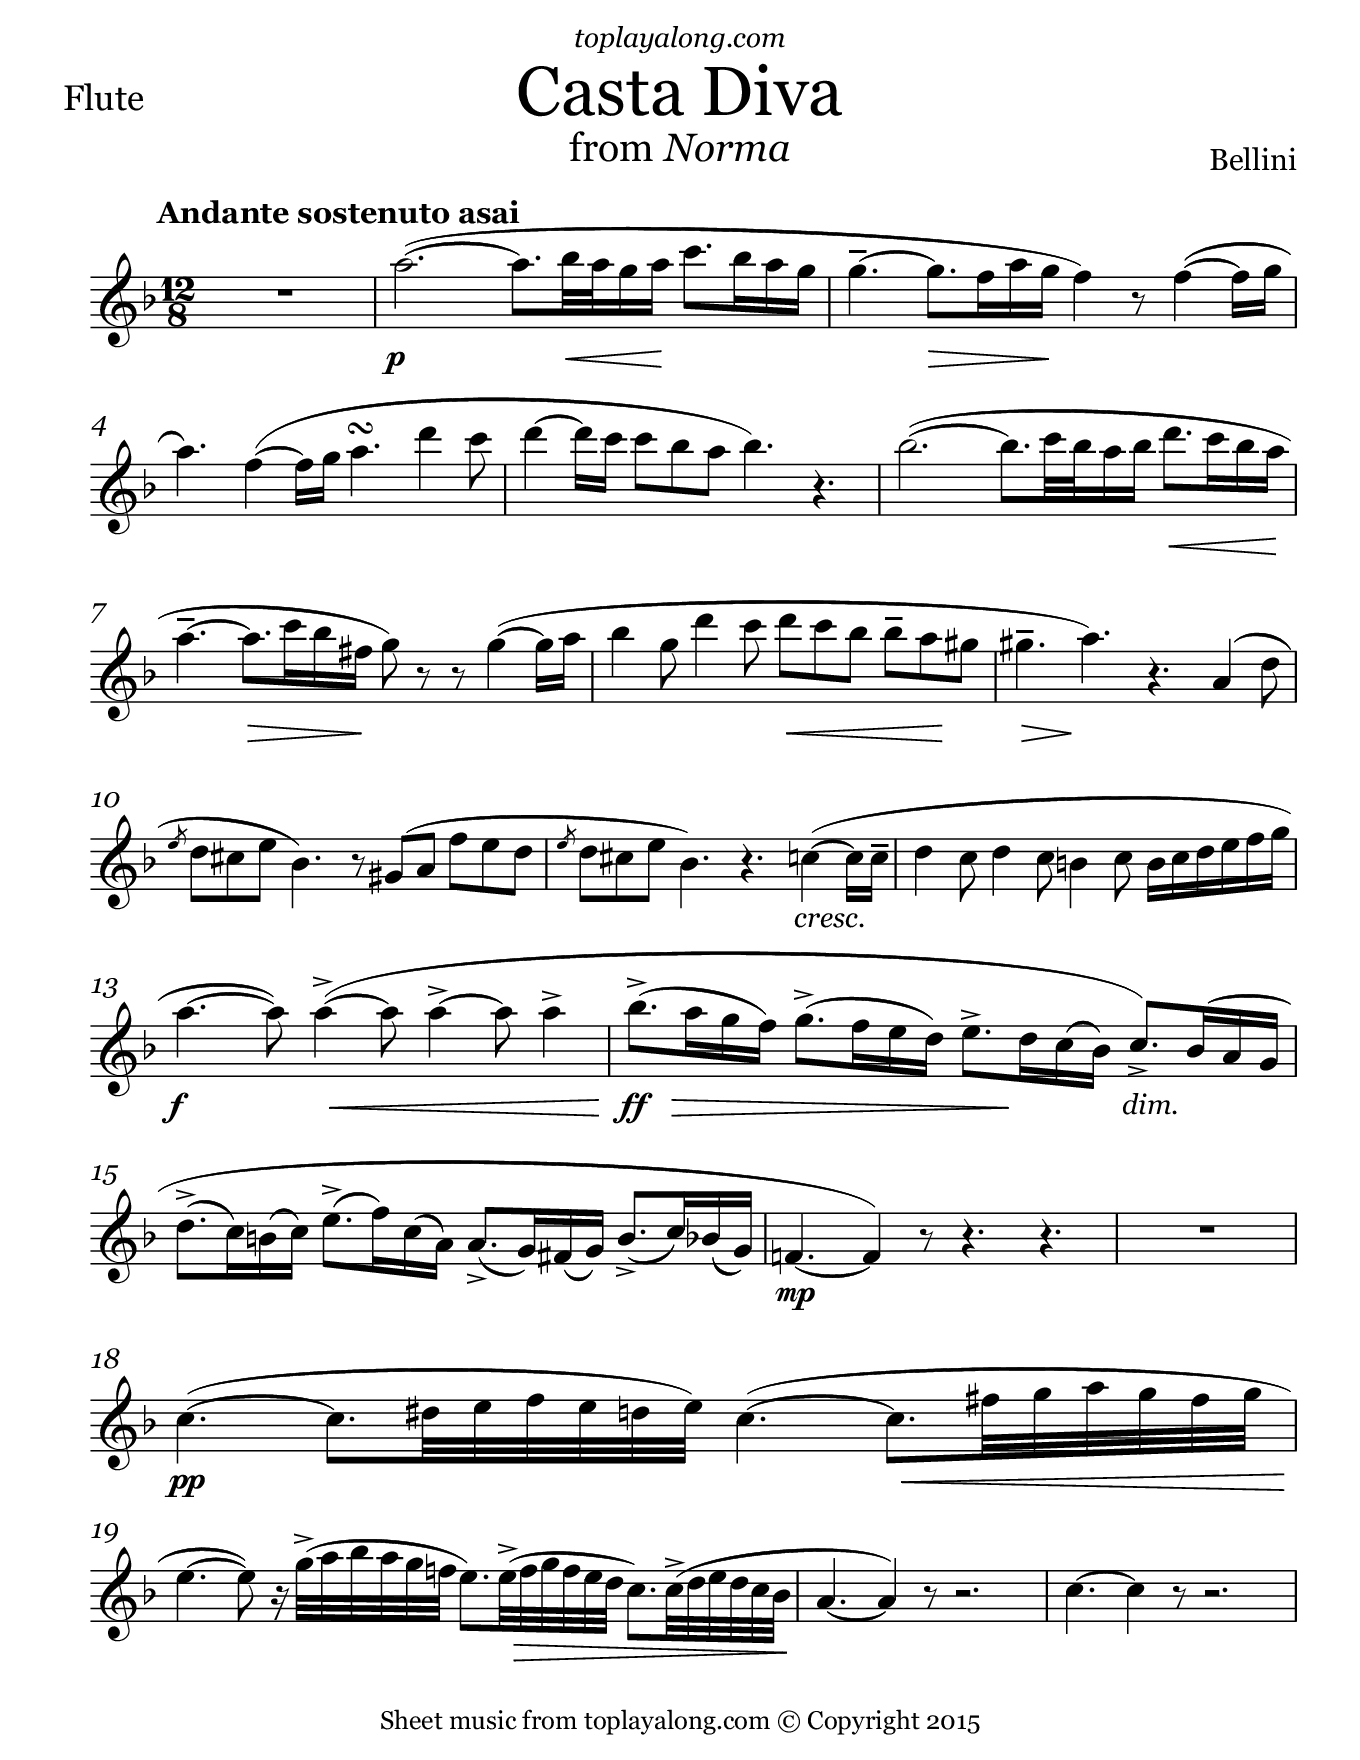 Casta Diva from Norma by Bellini. Sheet music for Flute, page 1.